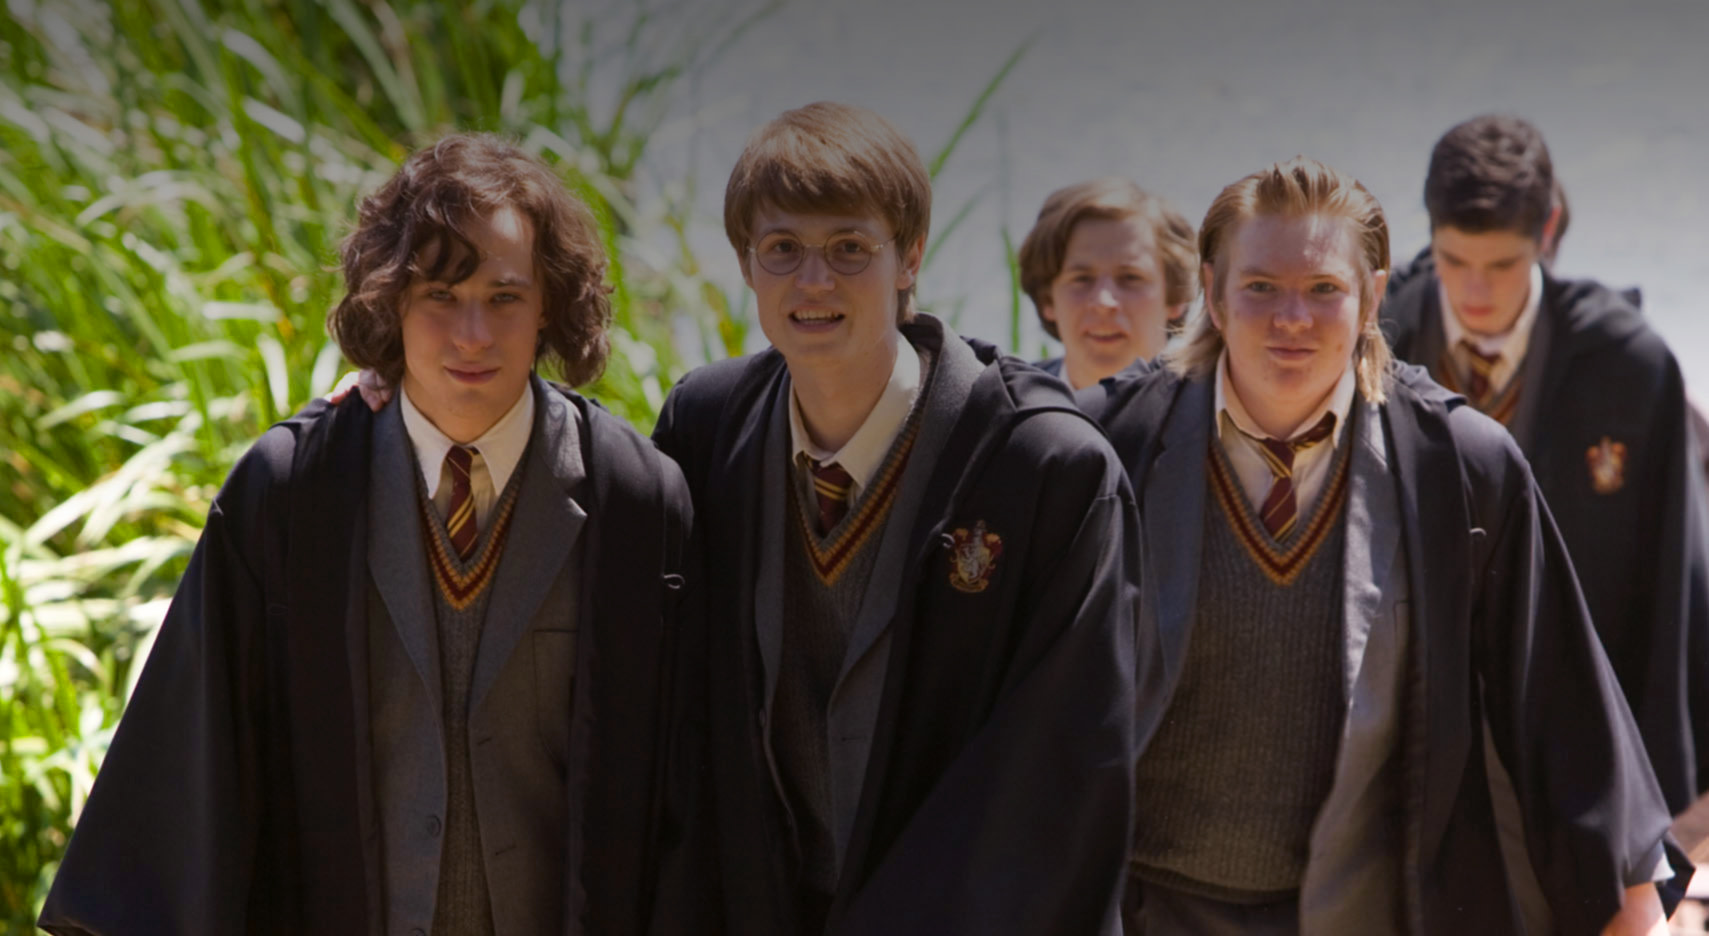 The Most Enviable Friendships In Harry Potter Wizarding World